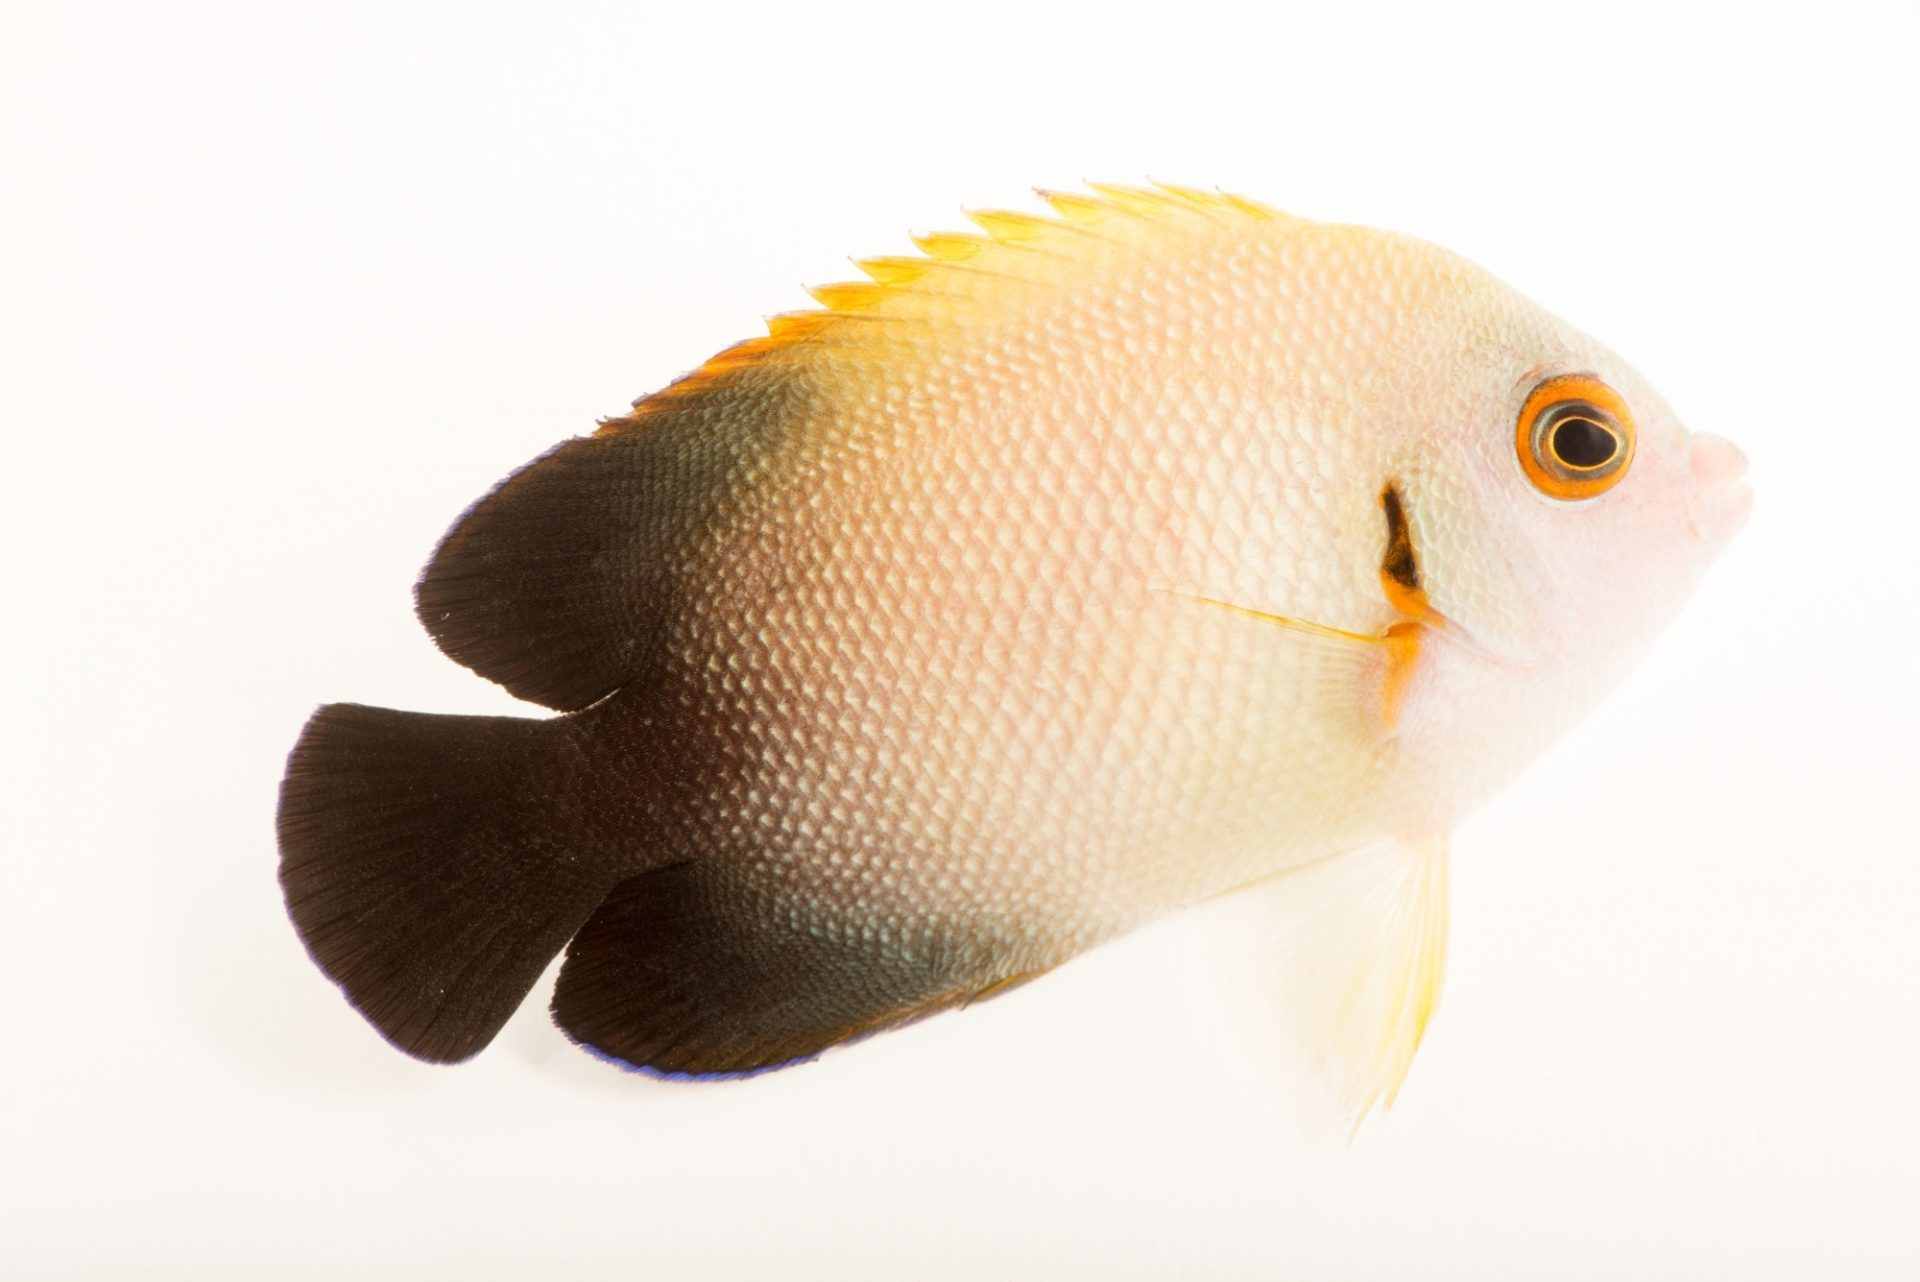 Photo: Half-black angelfish (Centropyge vroliki) from Gulf Specimen Marine Laboratories.